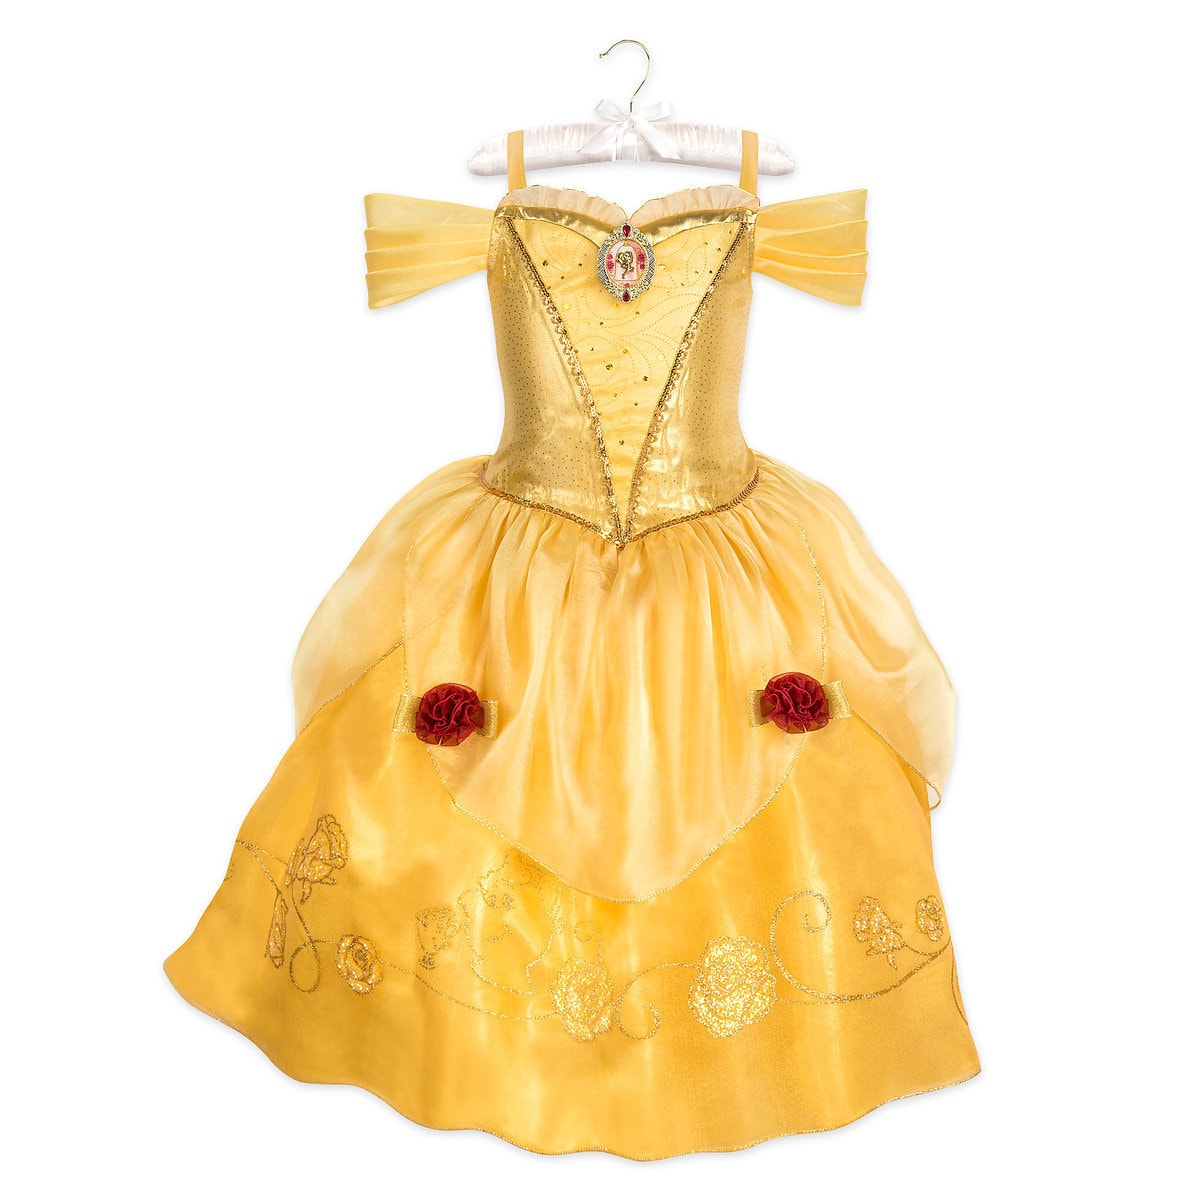 8030ae4e136a6 Product Image of Belle Costume for Kids - Beauty and the Beast # 1